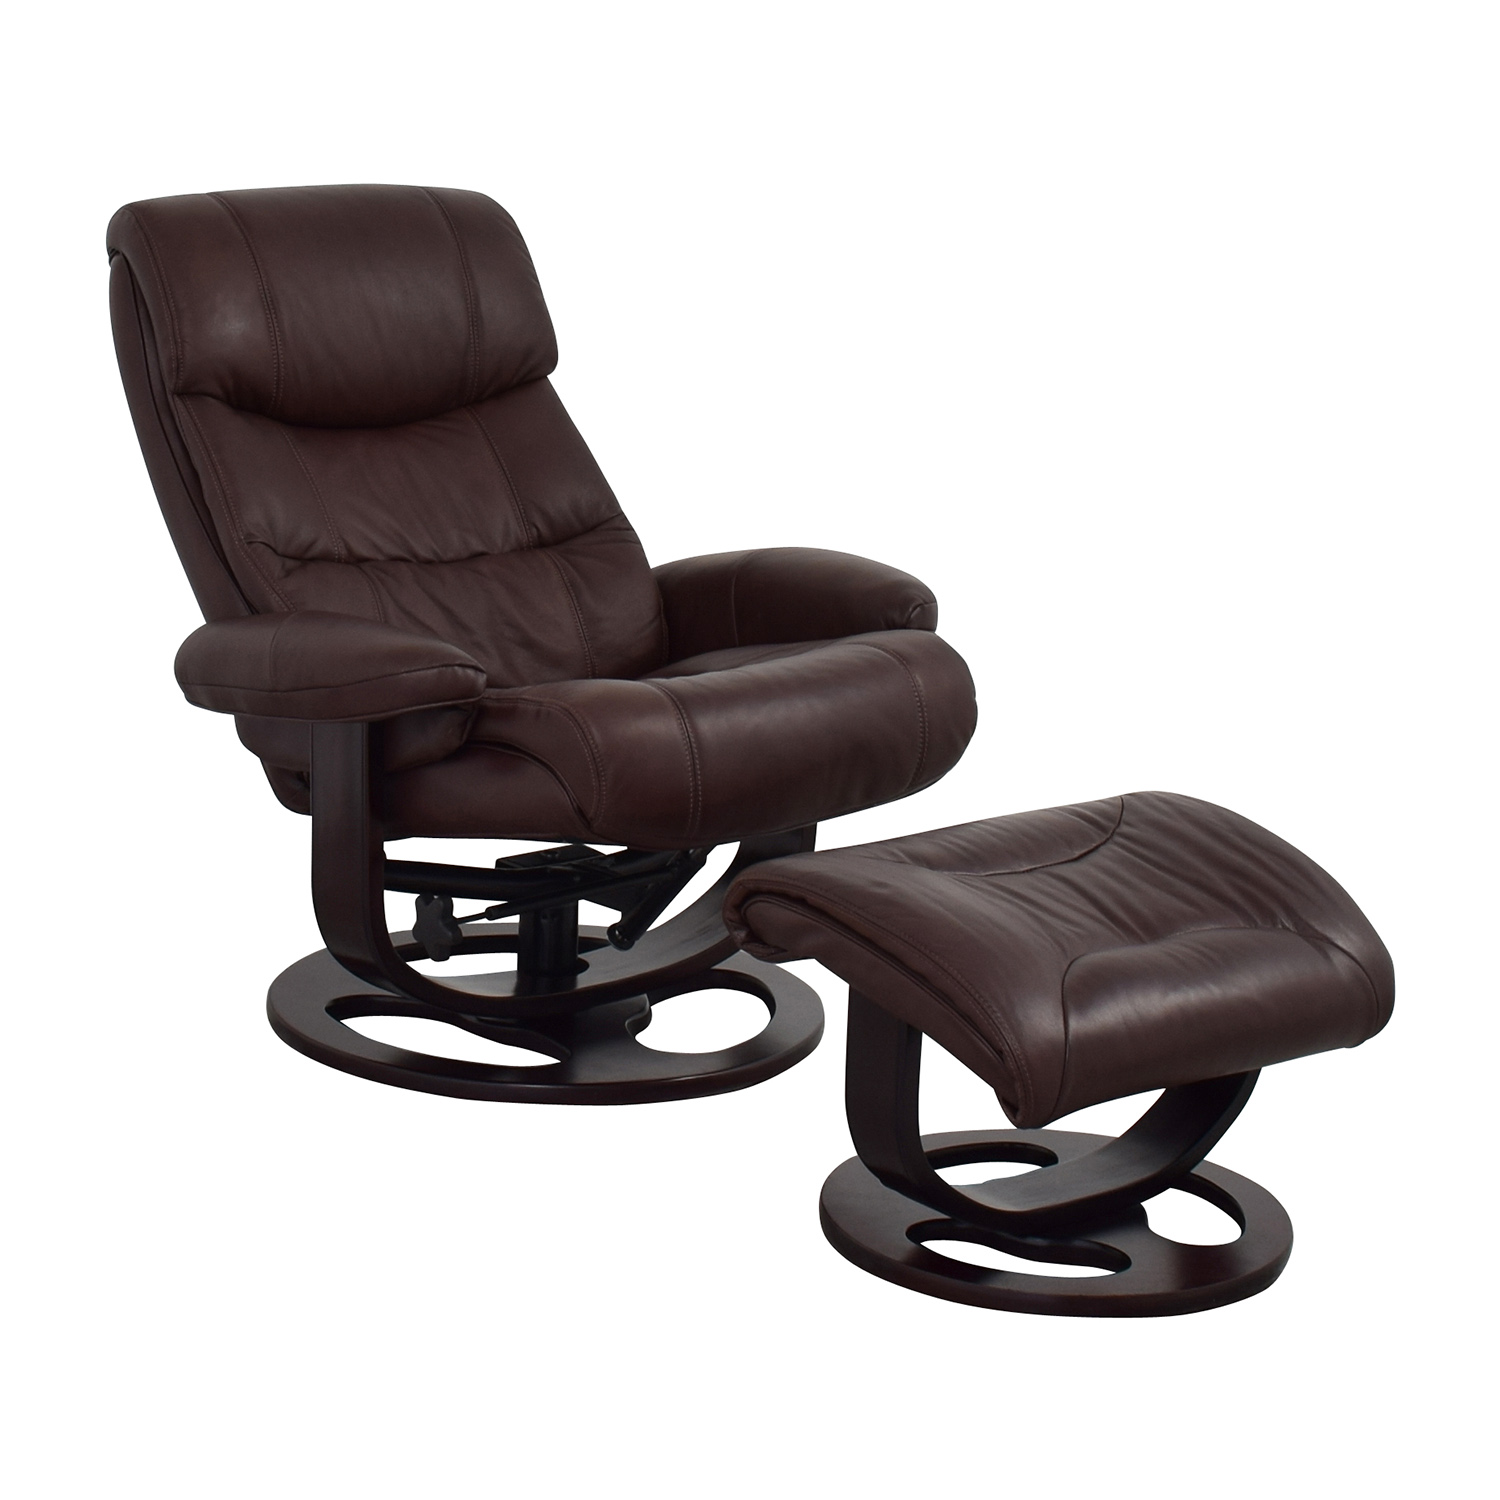 59 OFF  Macys Macys Aby Brown Leather Recliner Chair